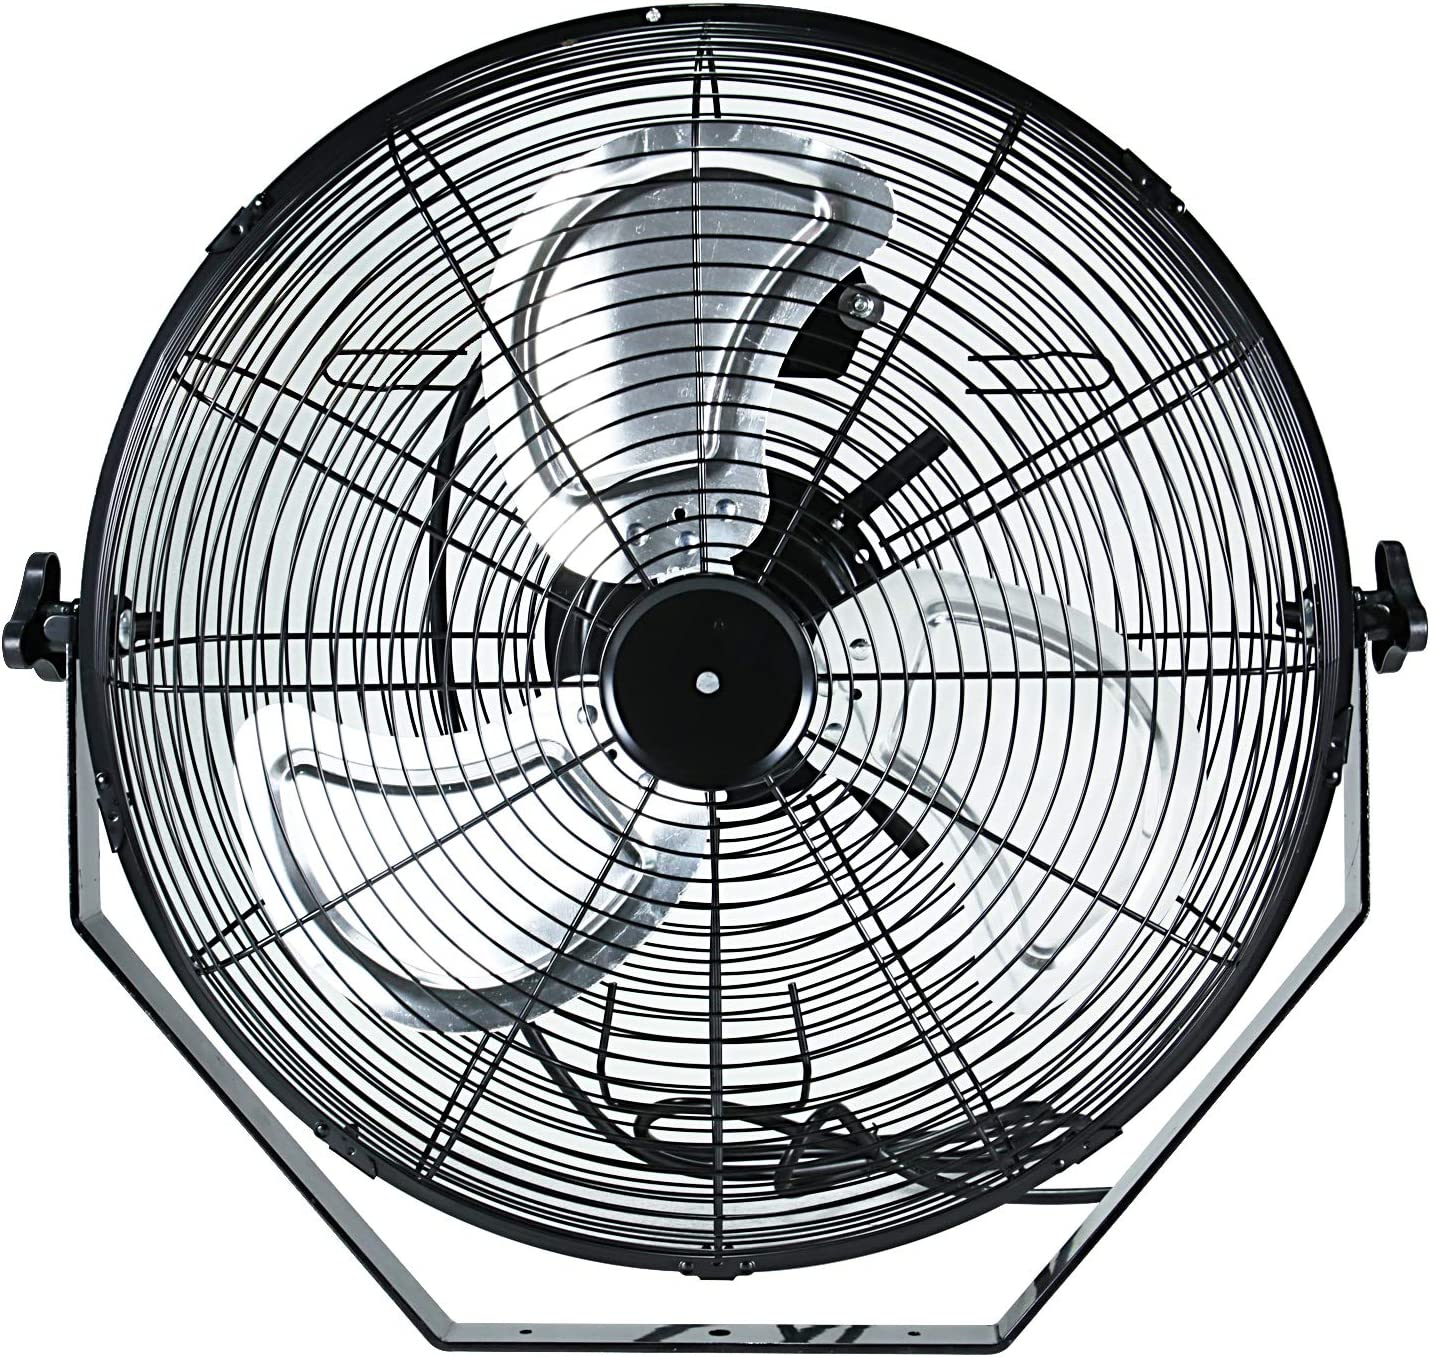 Simple Deluxe 18 Inch Industrial Wall Mount Fan, 3 Speed Commercial Ventilation Metal Fan for Warehouse, Greenhouse, Workshop, Patio, Factory and Basement – High Velocity – ETL Listed